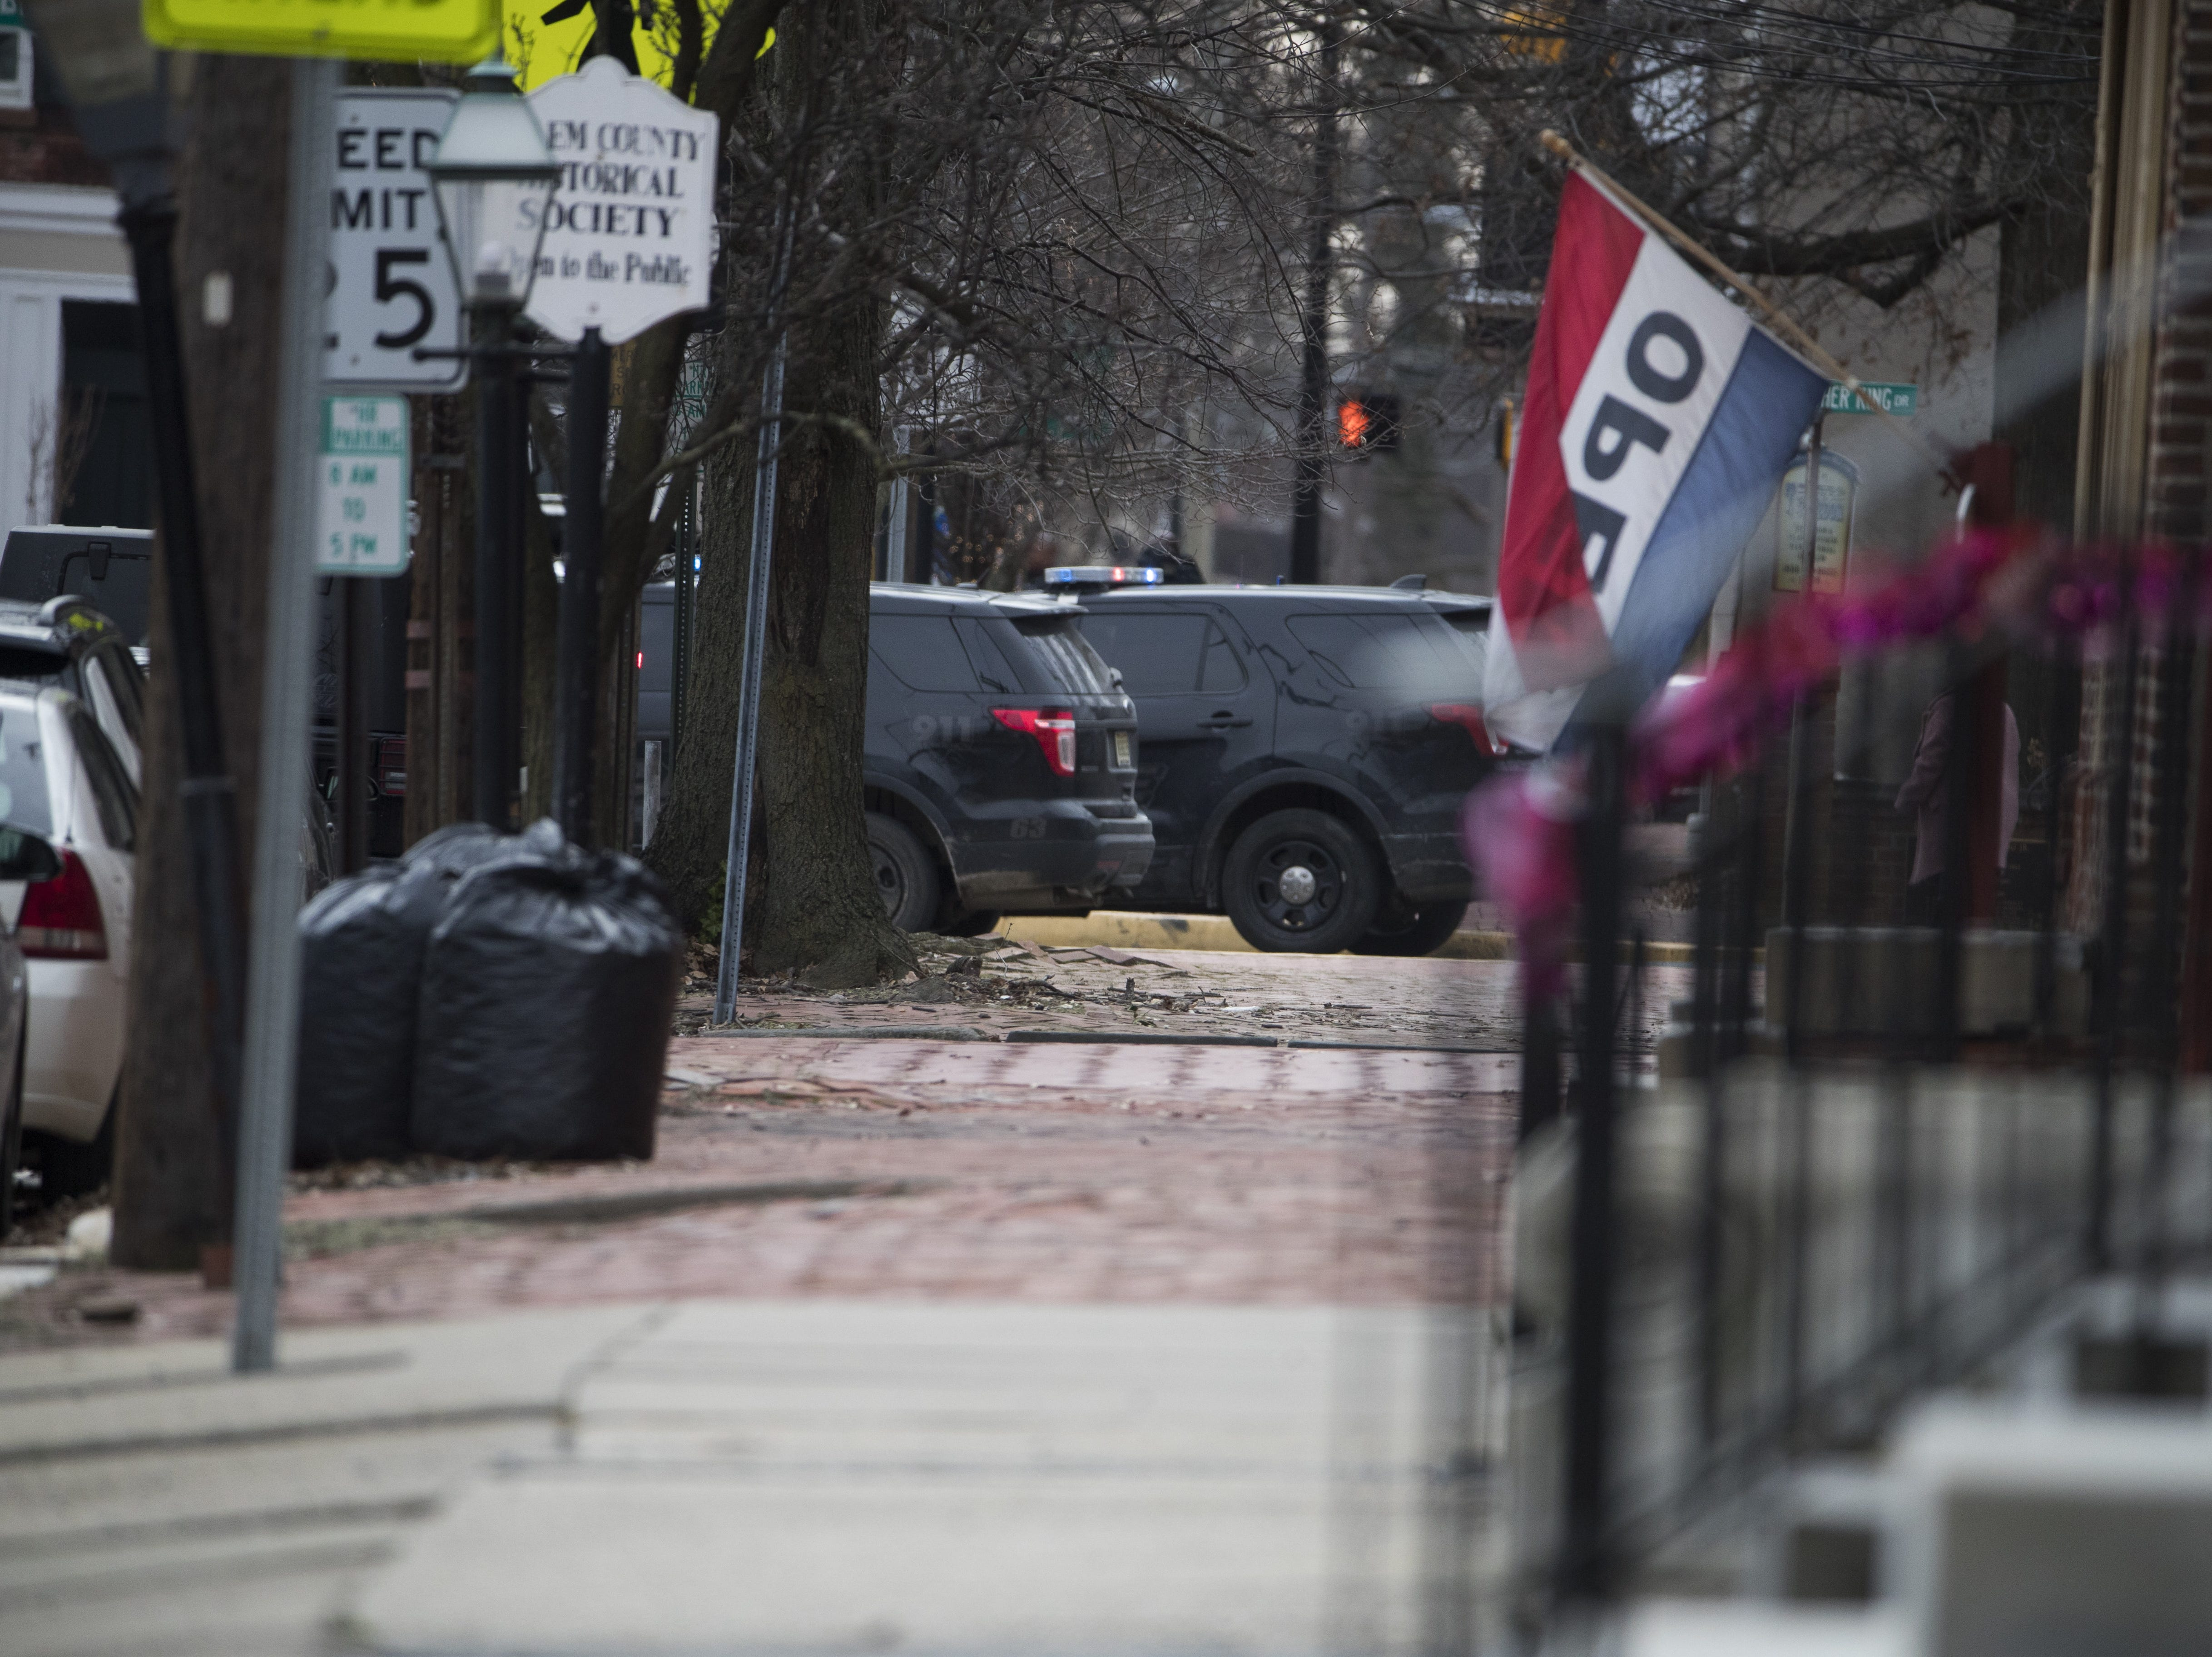 Police are currently on scene at a reported active shooter scene that has lead to a standoff with law enforcement on the 100 block of East Broadway Street in Salem, N.J. Wednesday Jan. 23, 2019.